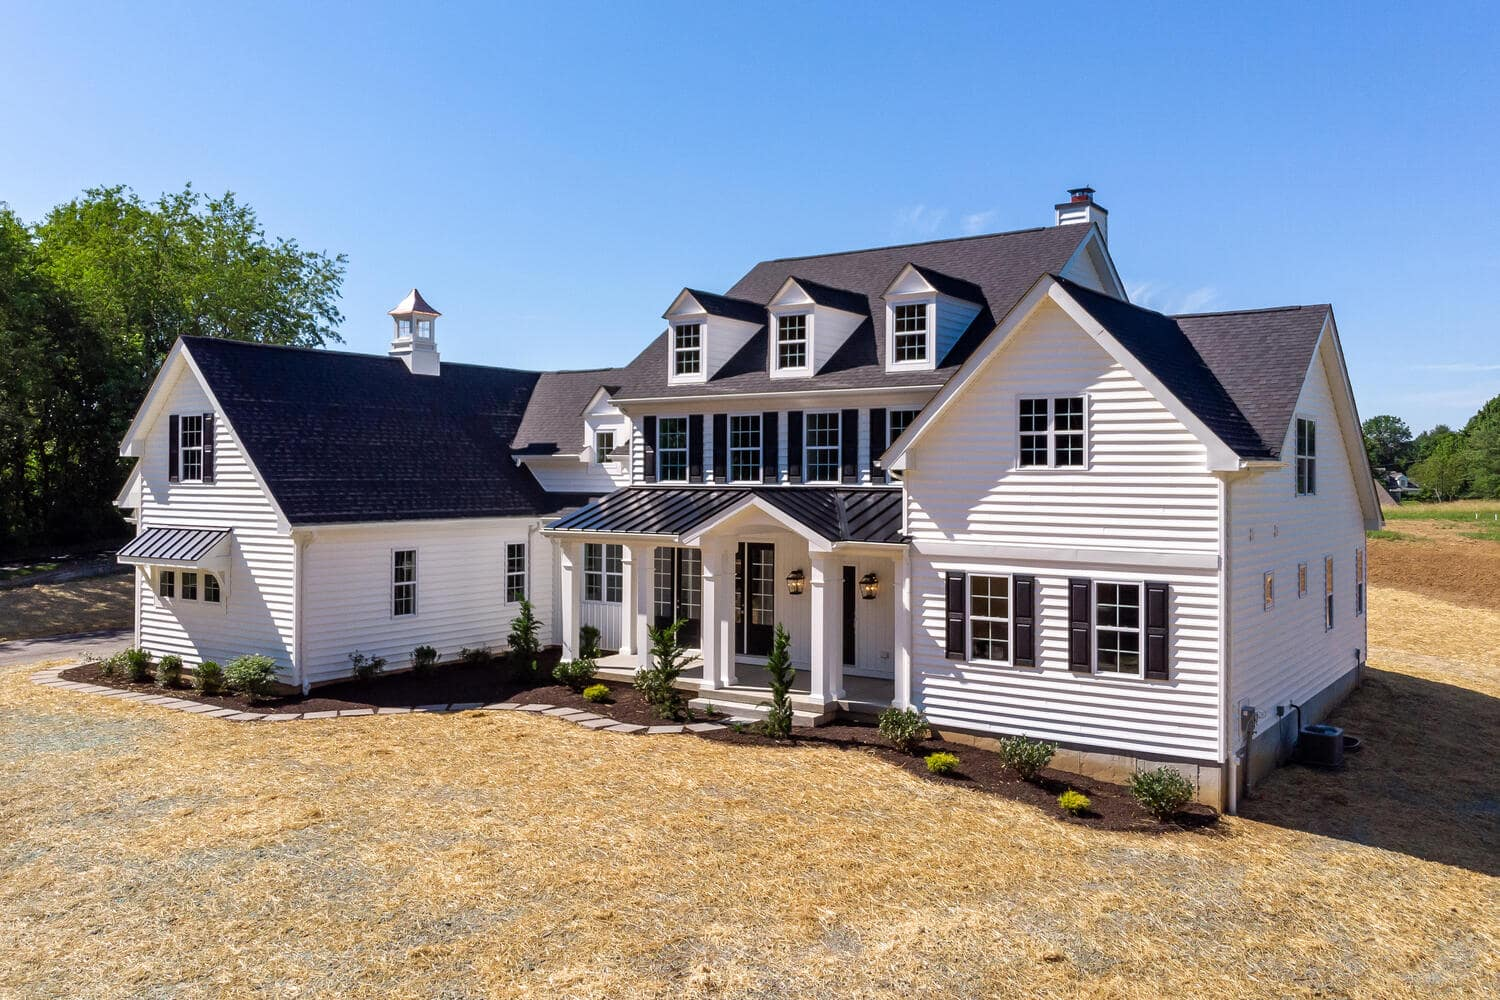 exterior image of a new home from Bentley Homes.